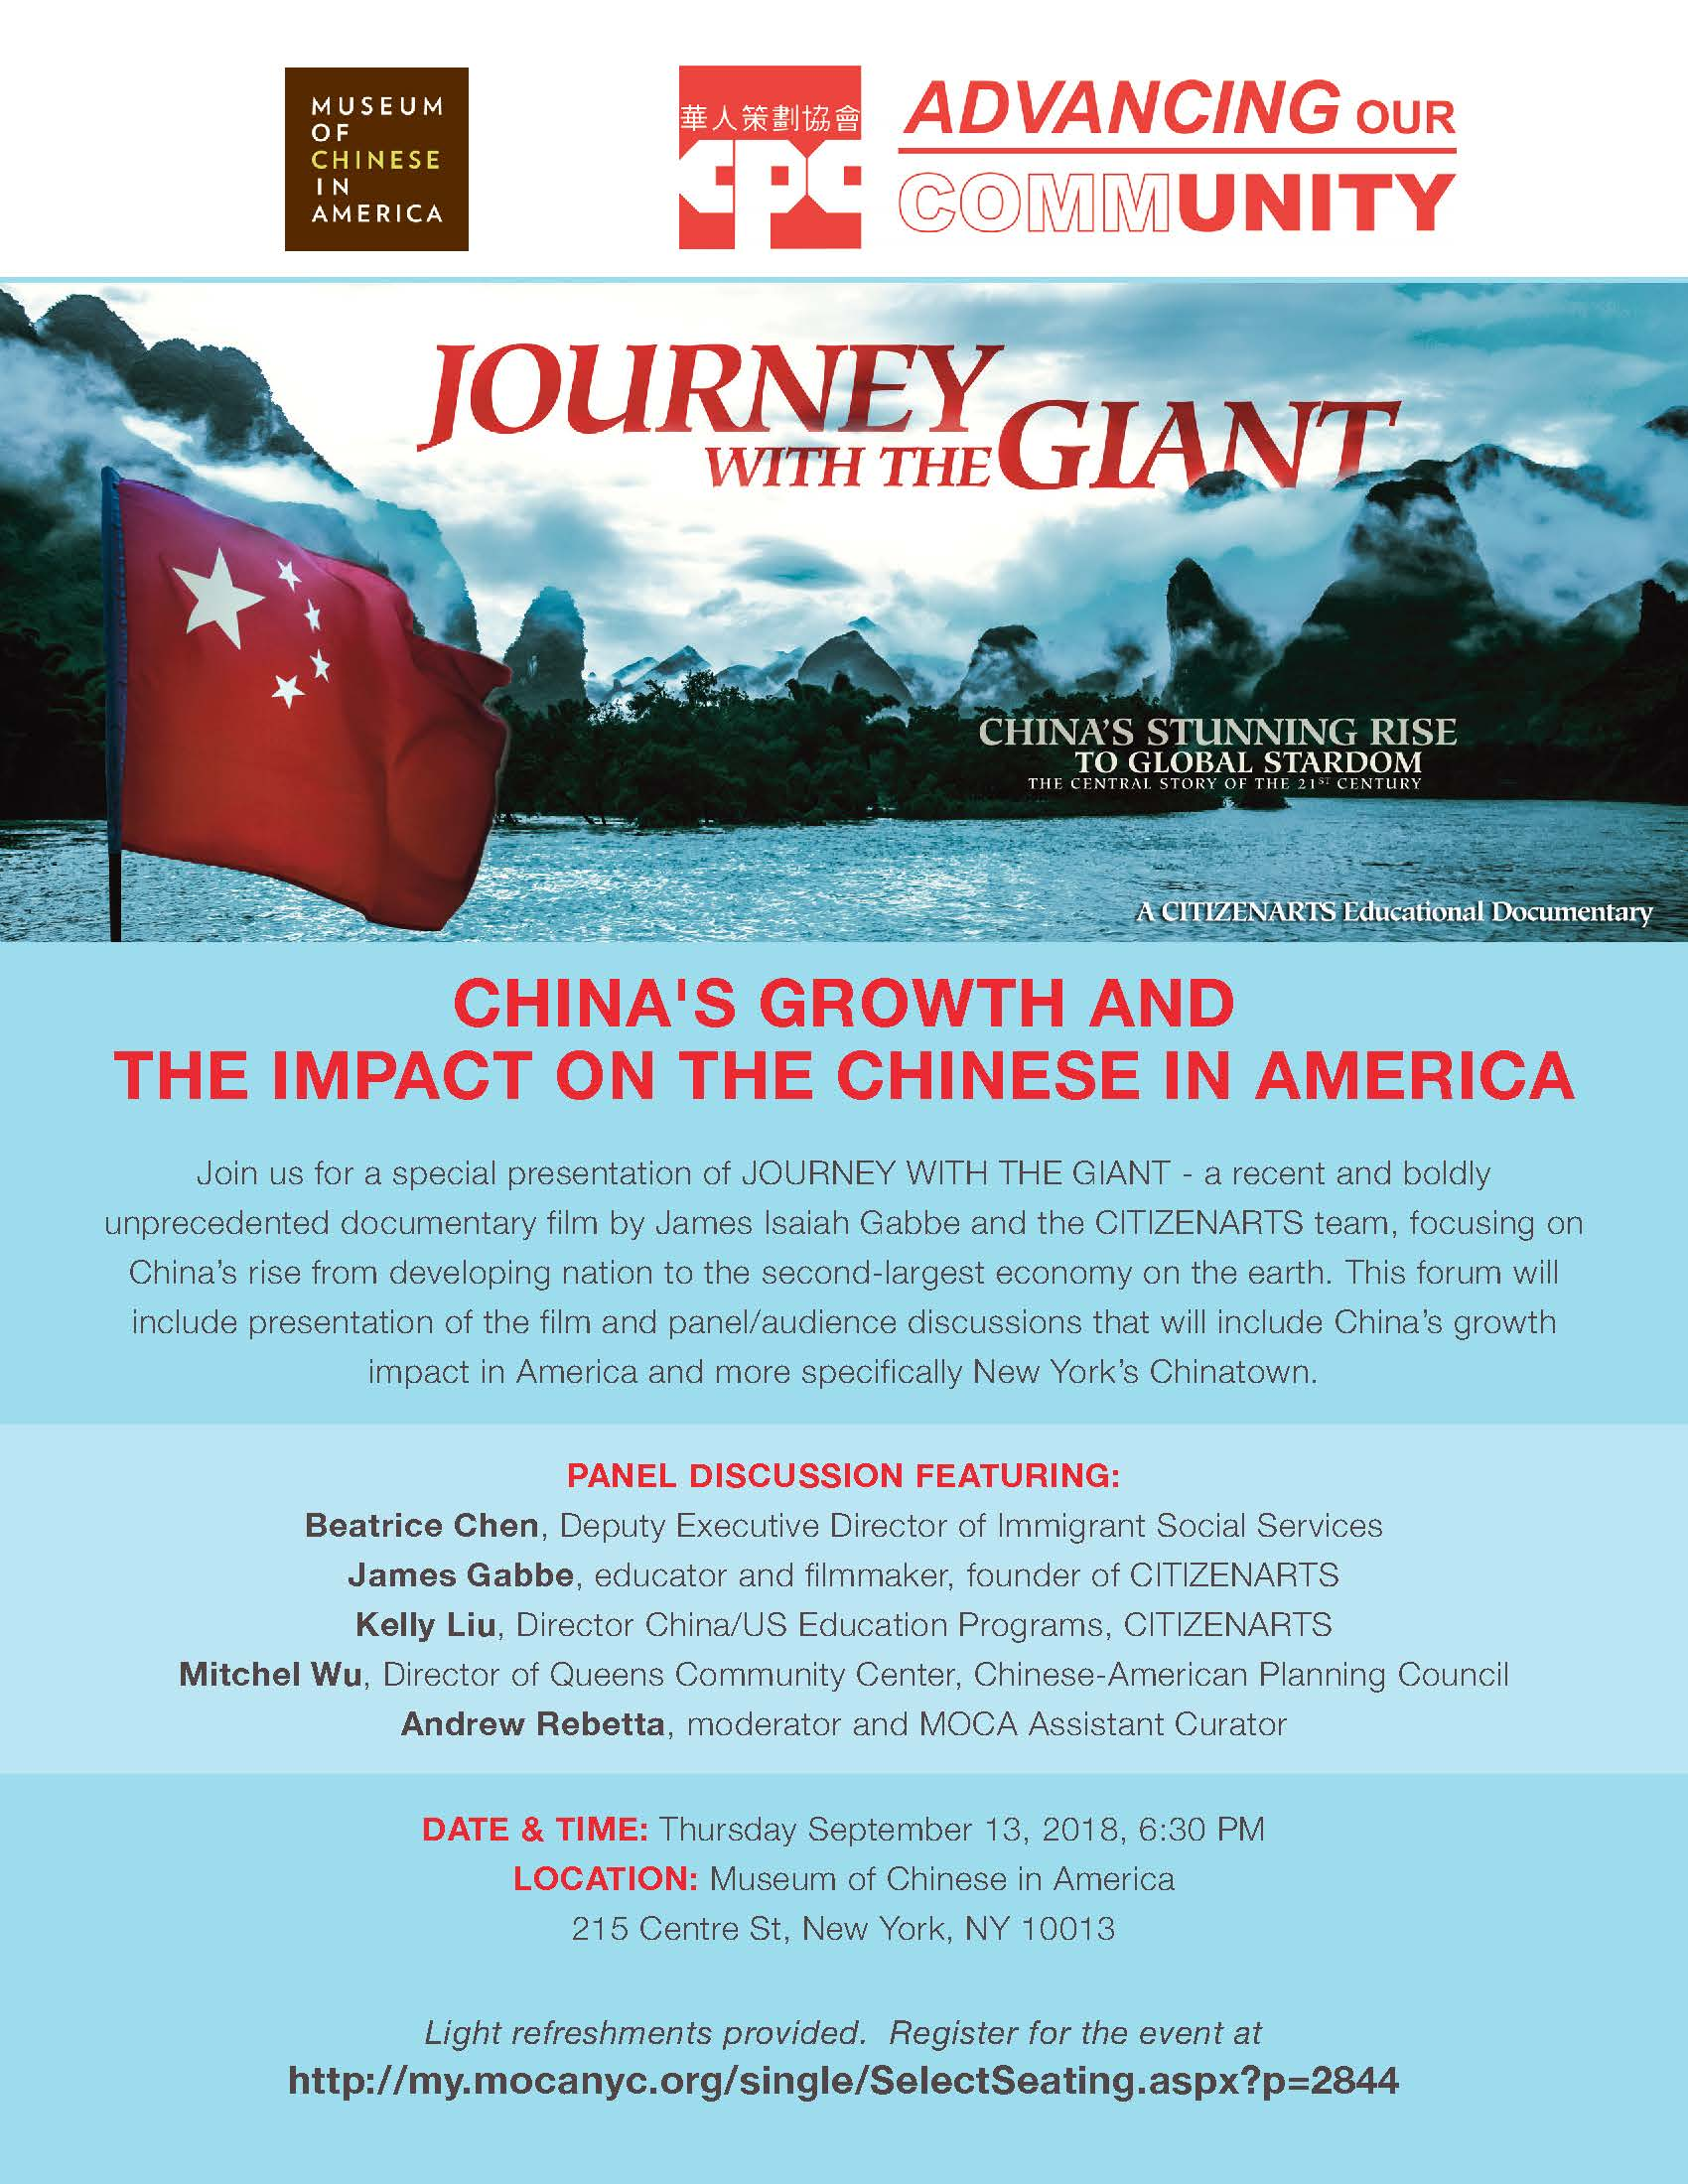 Journey with the Giant flyer